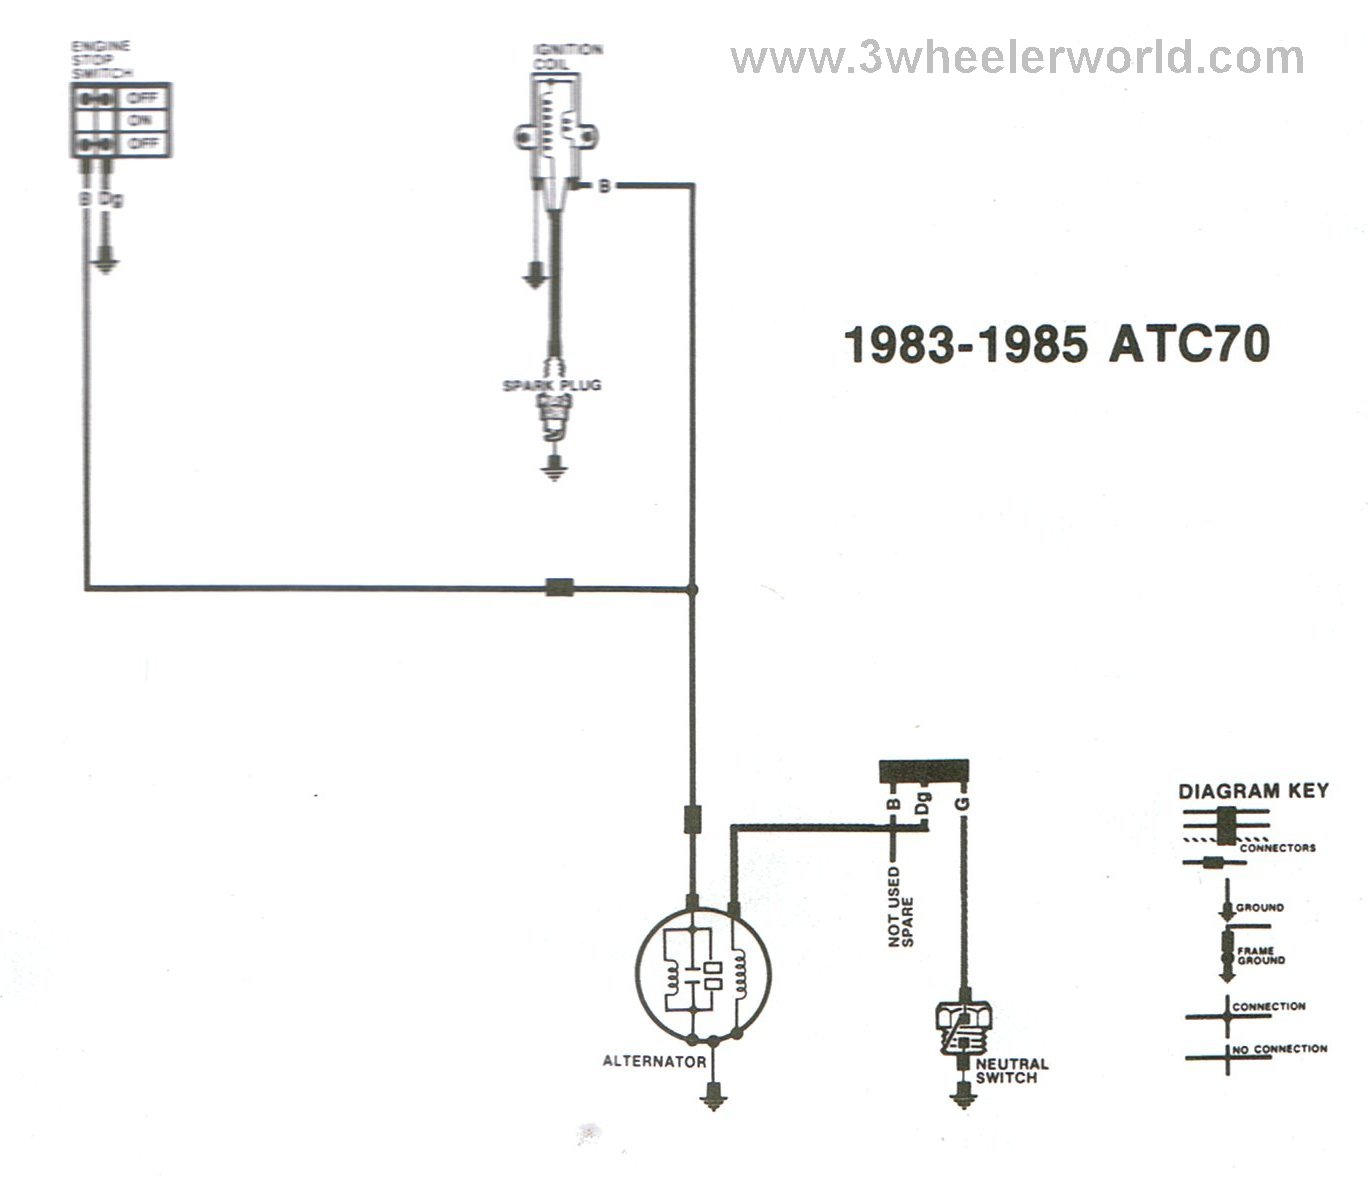 ATC70x83Thru85 3 wheeler world tech help honda wiring diagrams 1980 honda atc 110 wiring diagram at creativeand.co